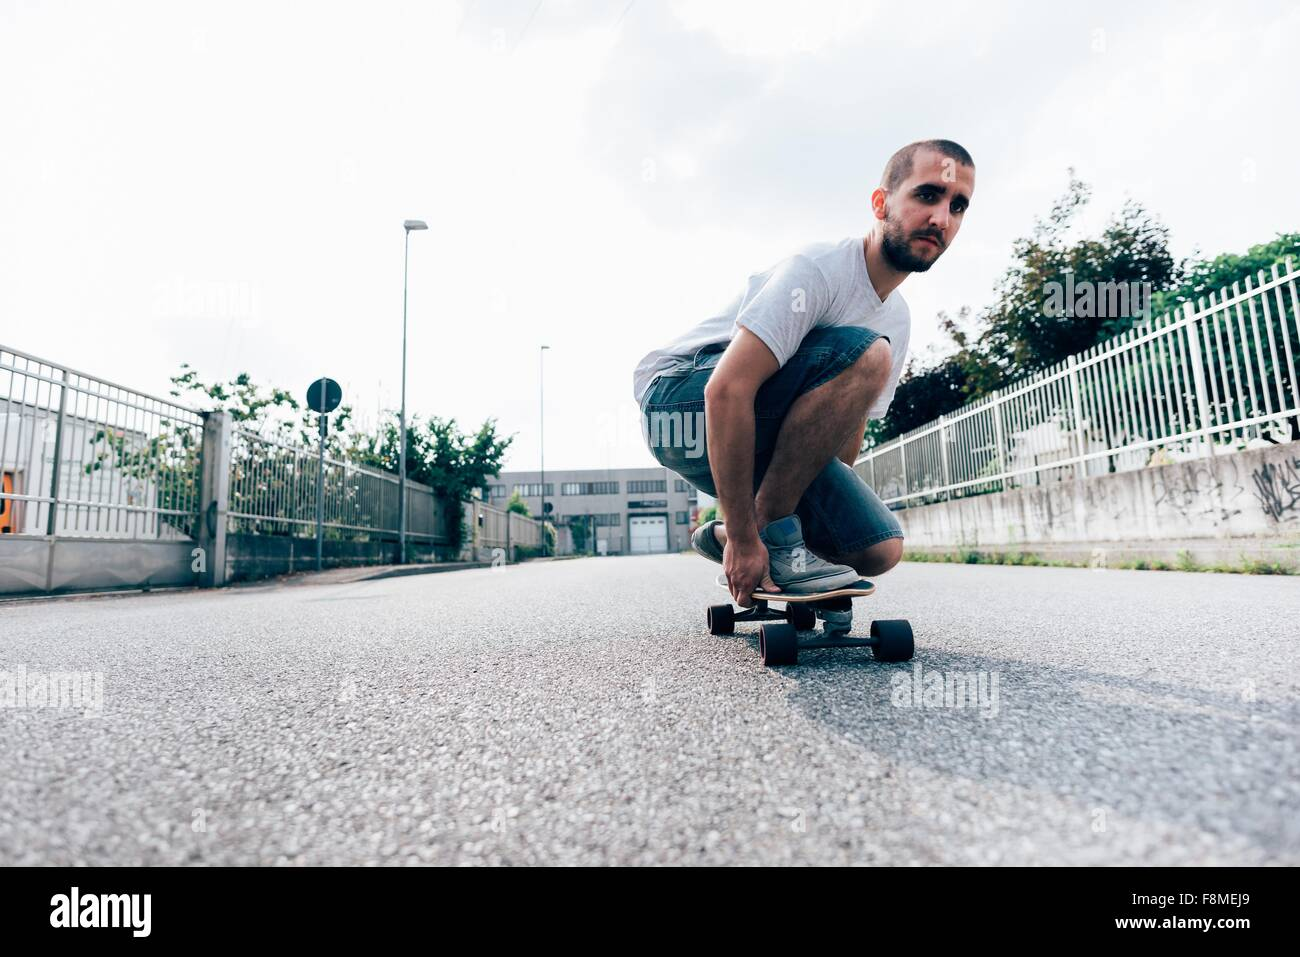 Young man crouched on skateboard Stock Photo